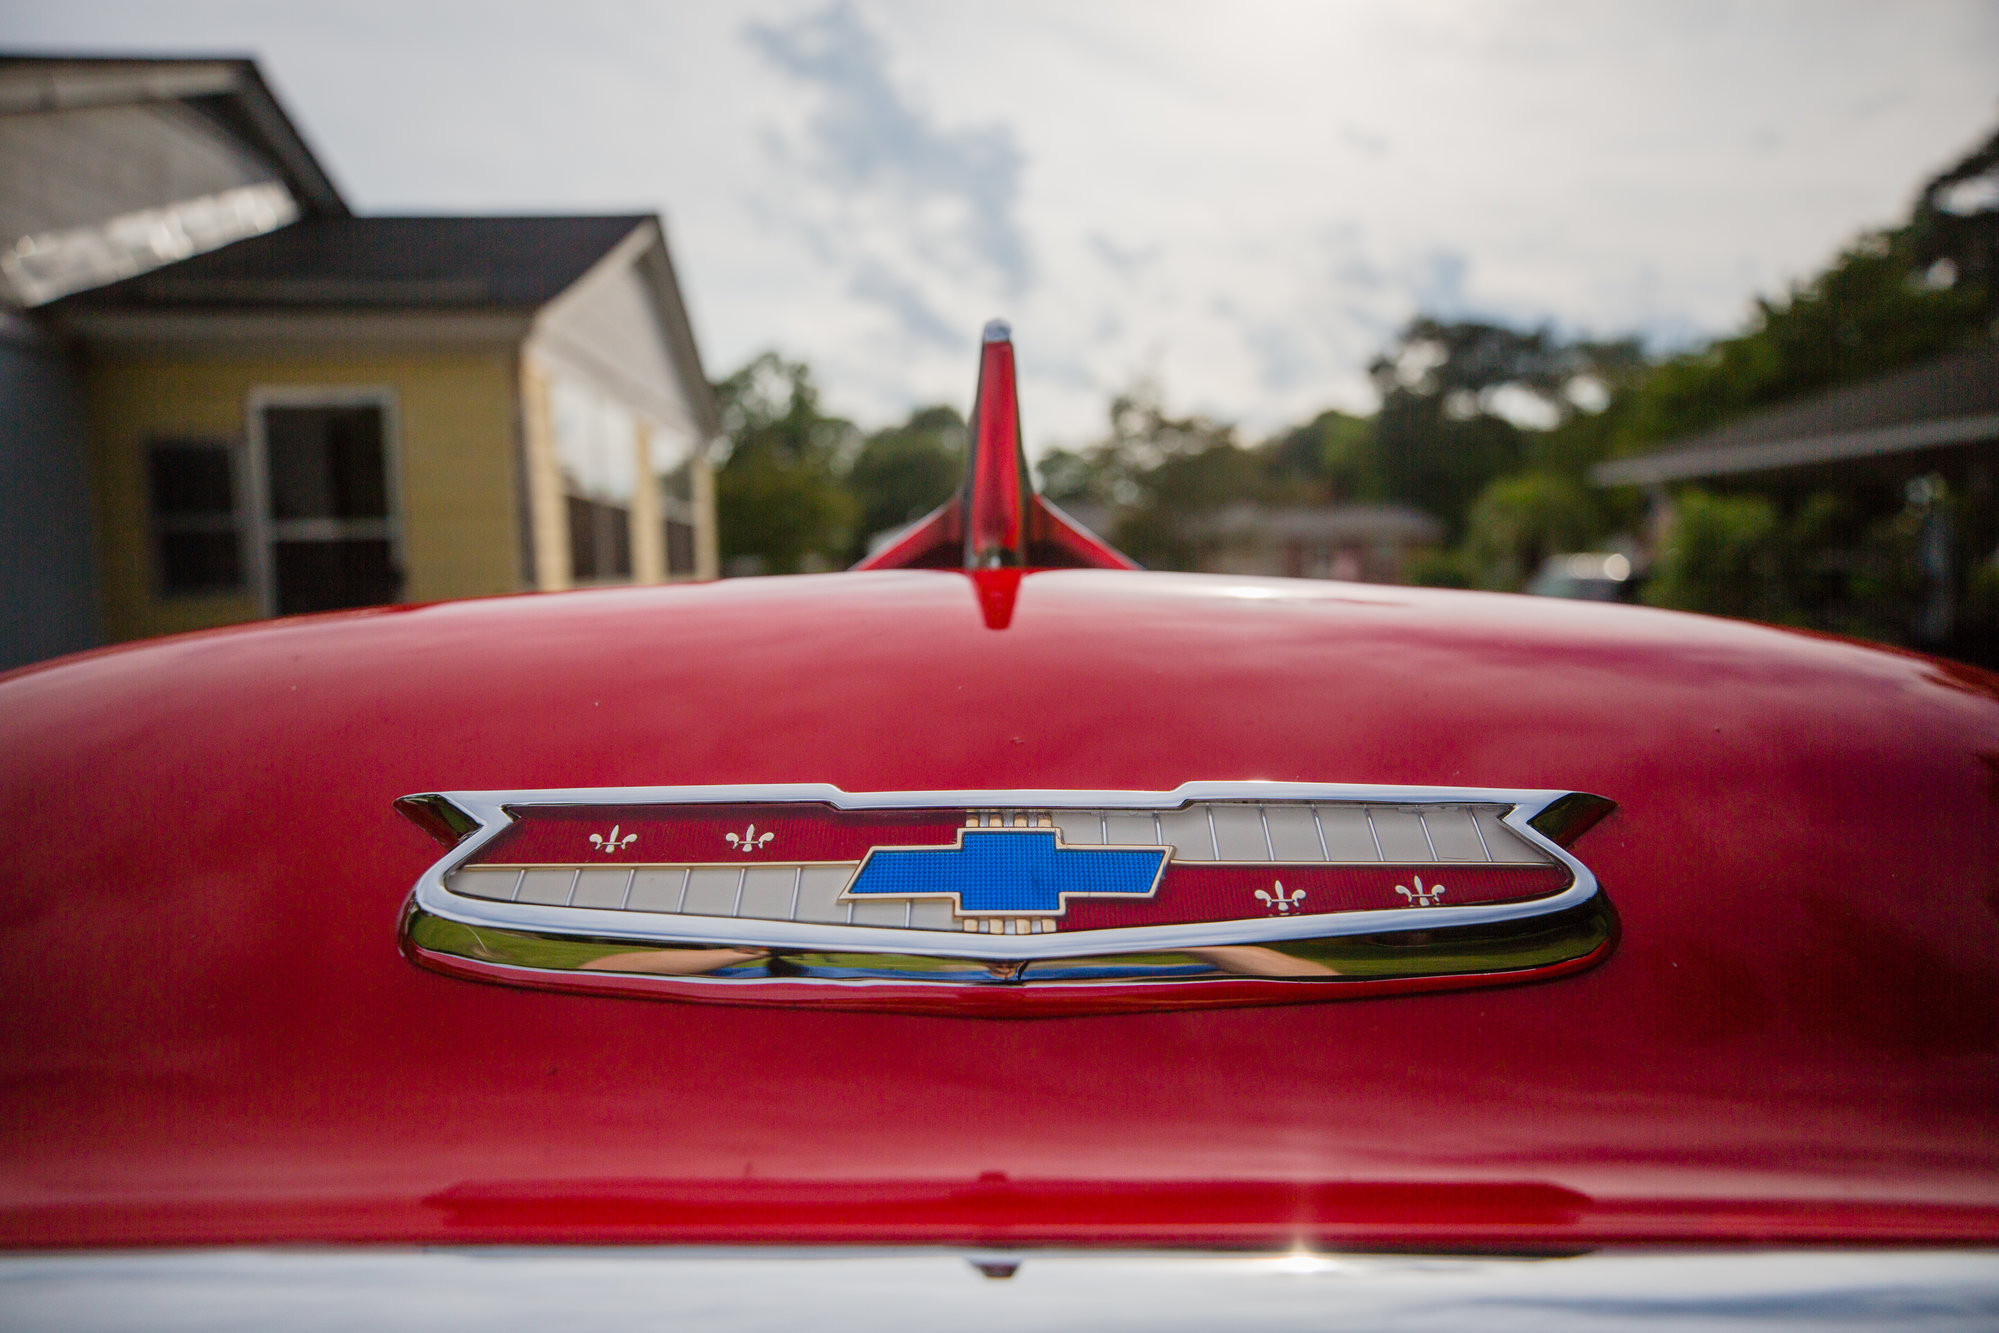 The hood ornament on Harold Hodge's '55 Chevy Bel Air is seen.